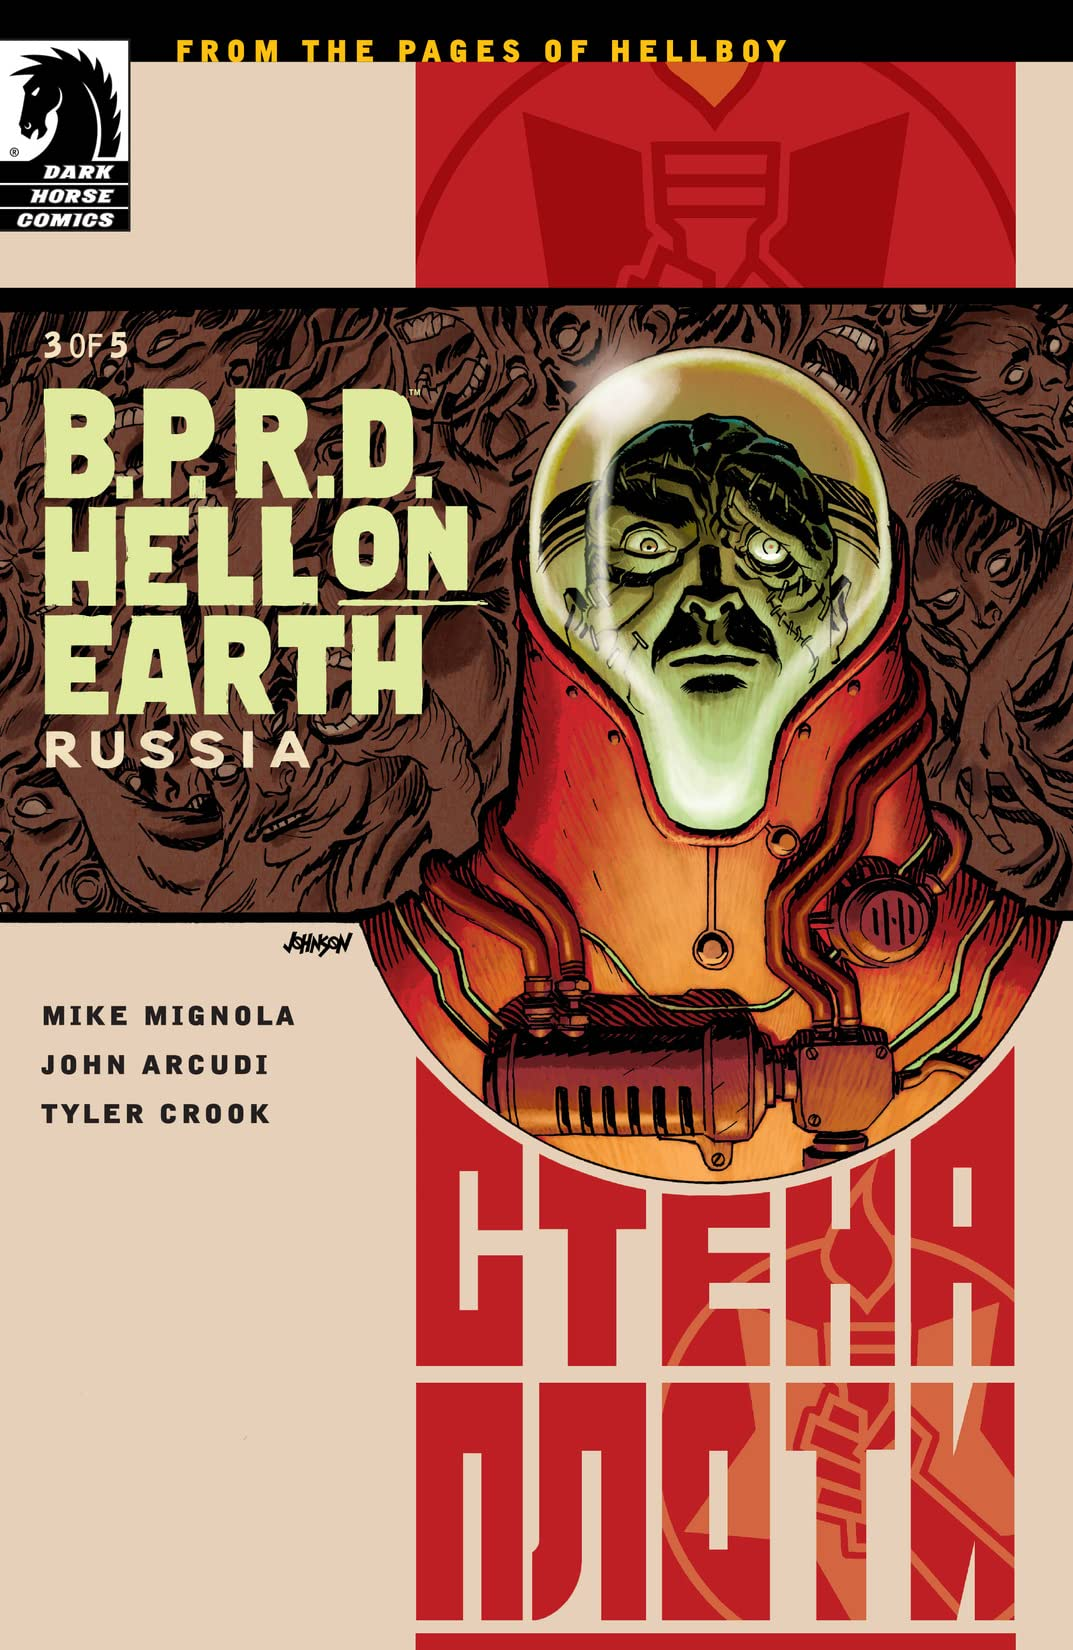 B.P.R.D.: Hell on Earth: Russia #3